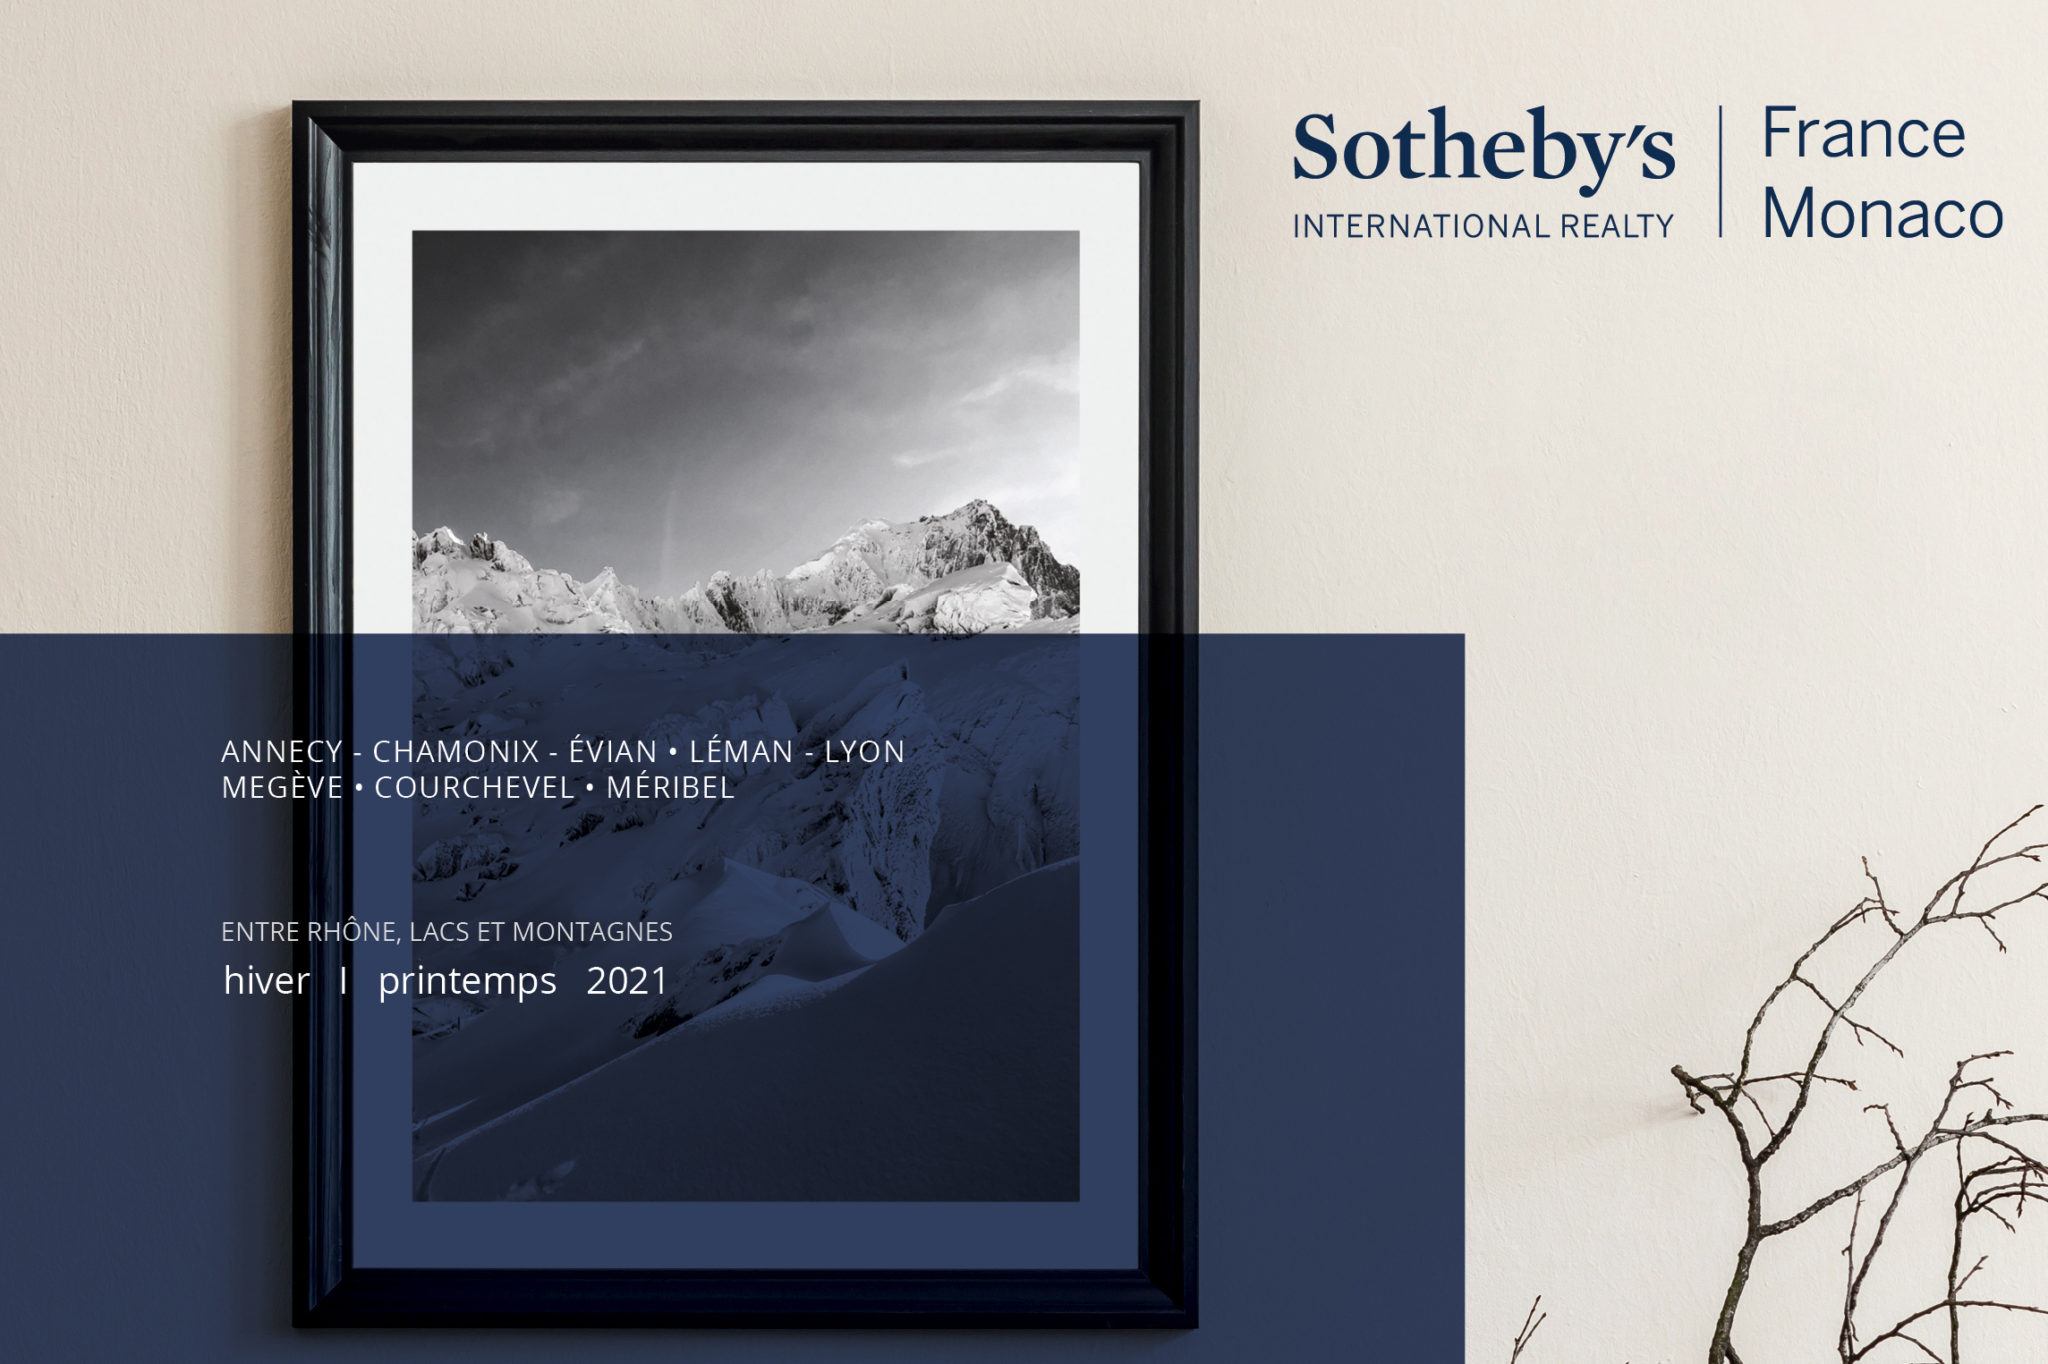 UBDC, Enjoy, Sothebys International Realty, magazine